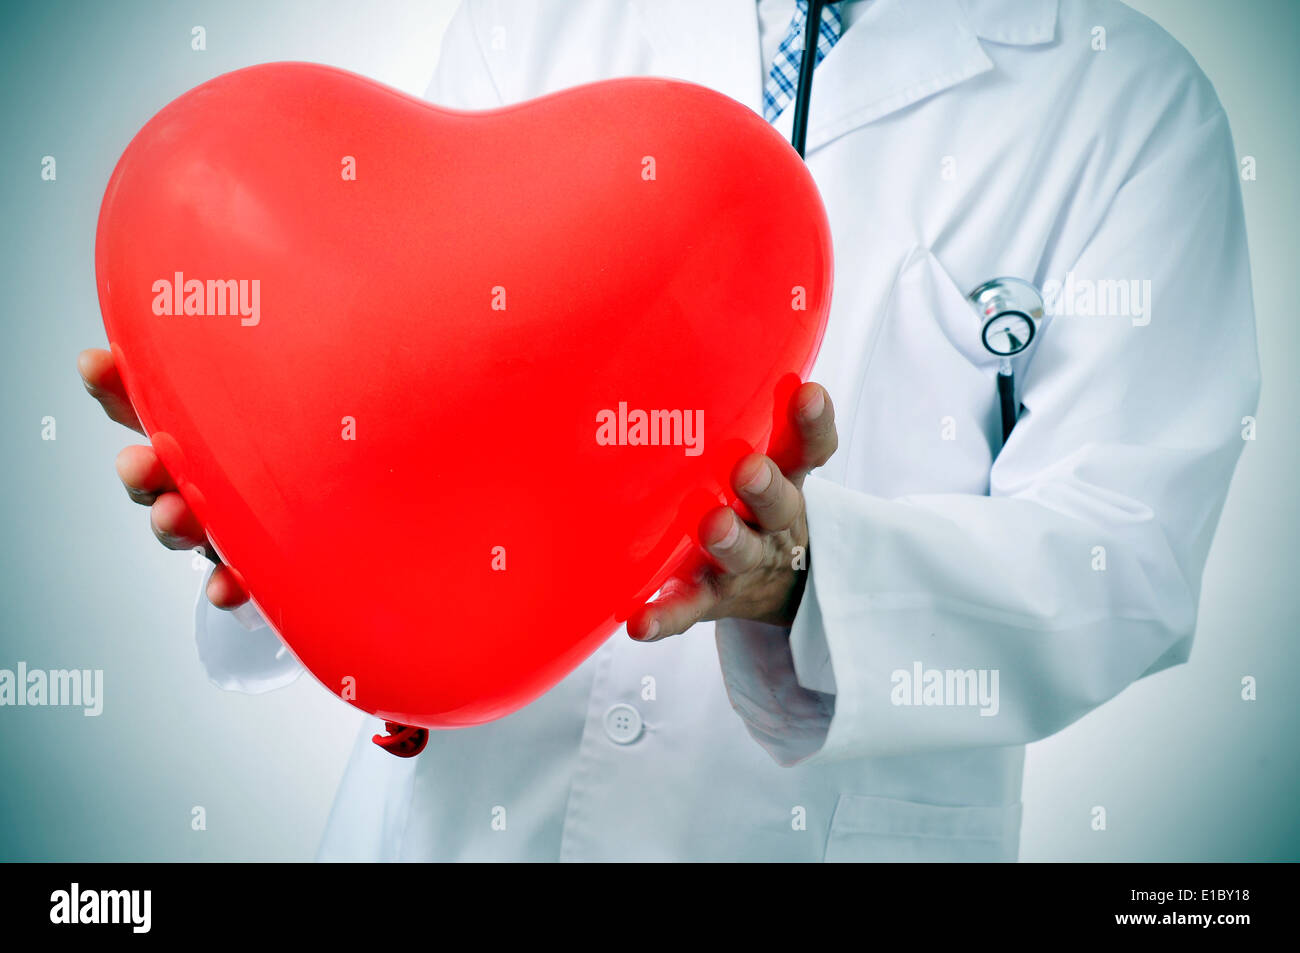 a doctor holding a red heart-shaped balloon, symbolizing the cardiovascular medicine - Stock Image